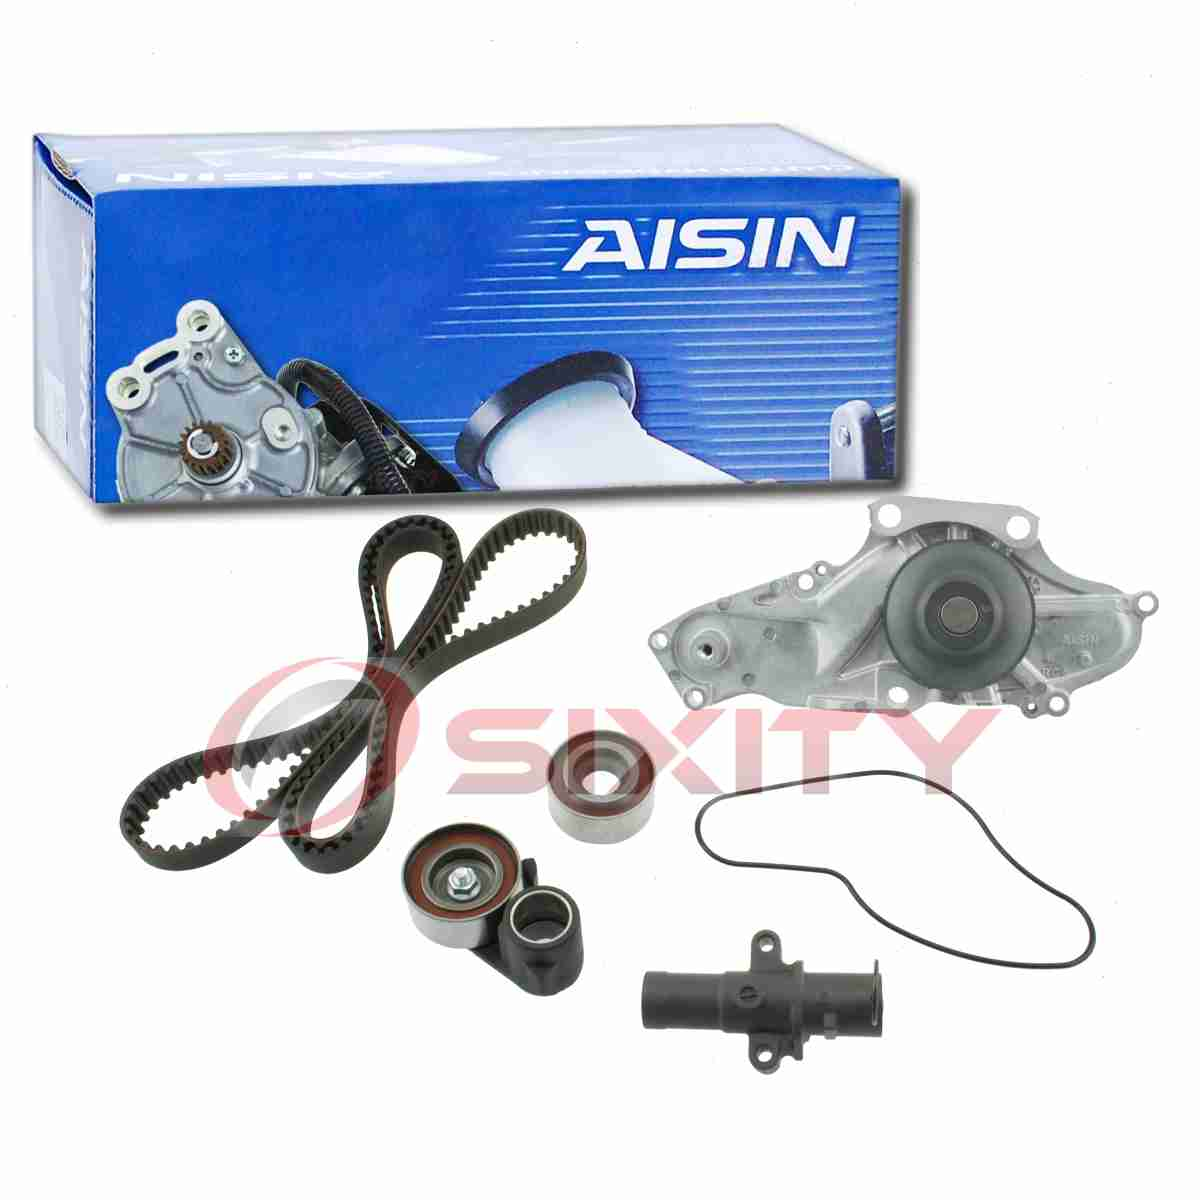 AISIN Engine Timing Belt Kits With Water Pumps Are A Direct, OEM  Compatible, Drop In Replacement For Your Vehicle. Utilizing The Experience  And Knowledge ...